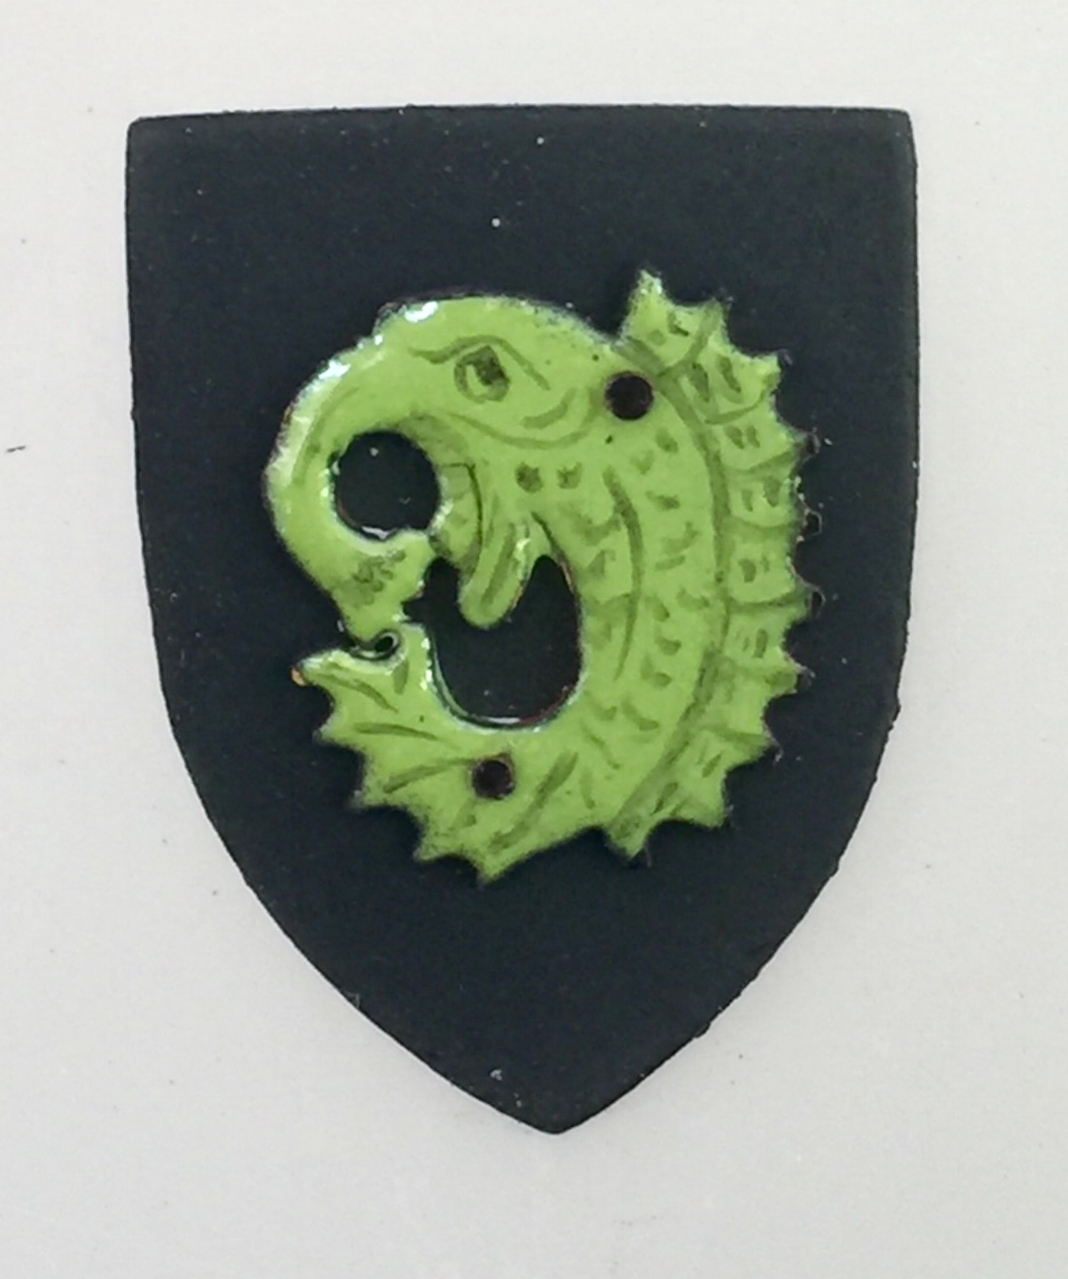 Green Fantastical Sea-Creature on Black Shield